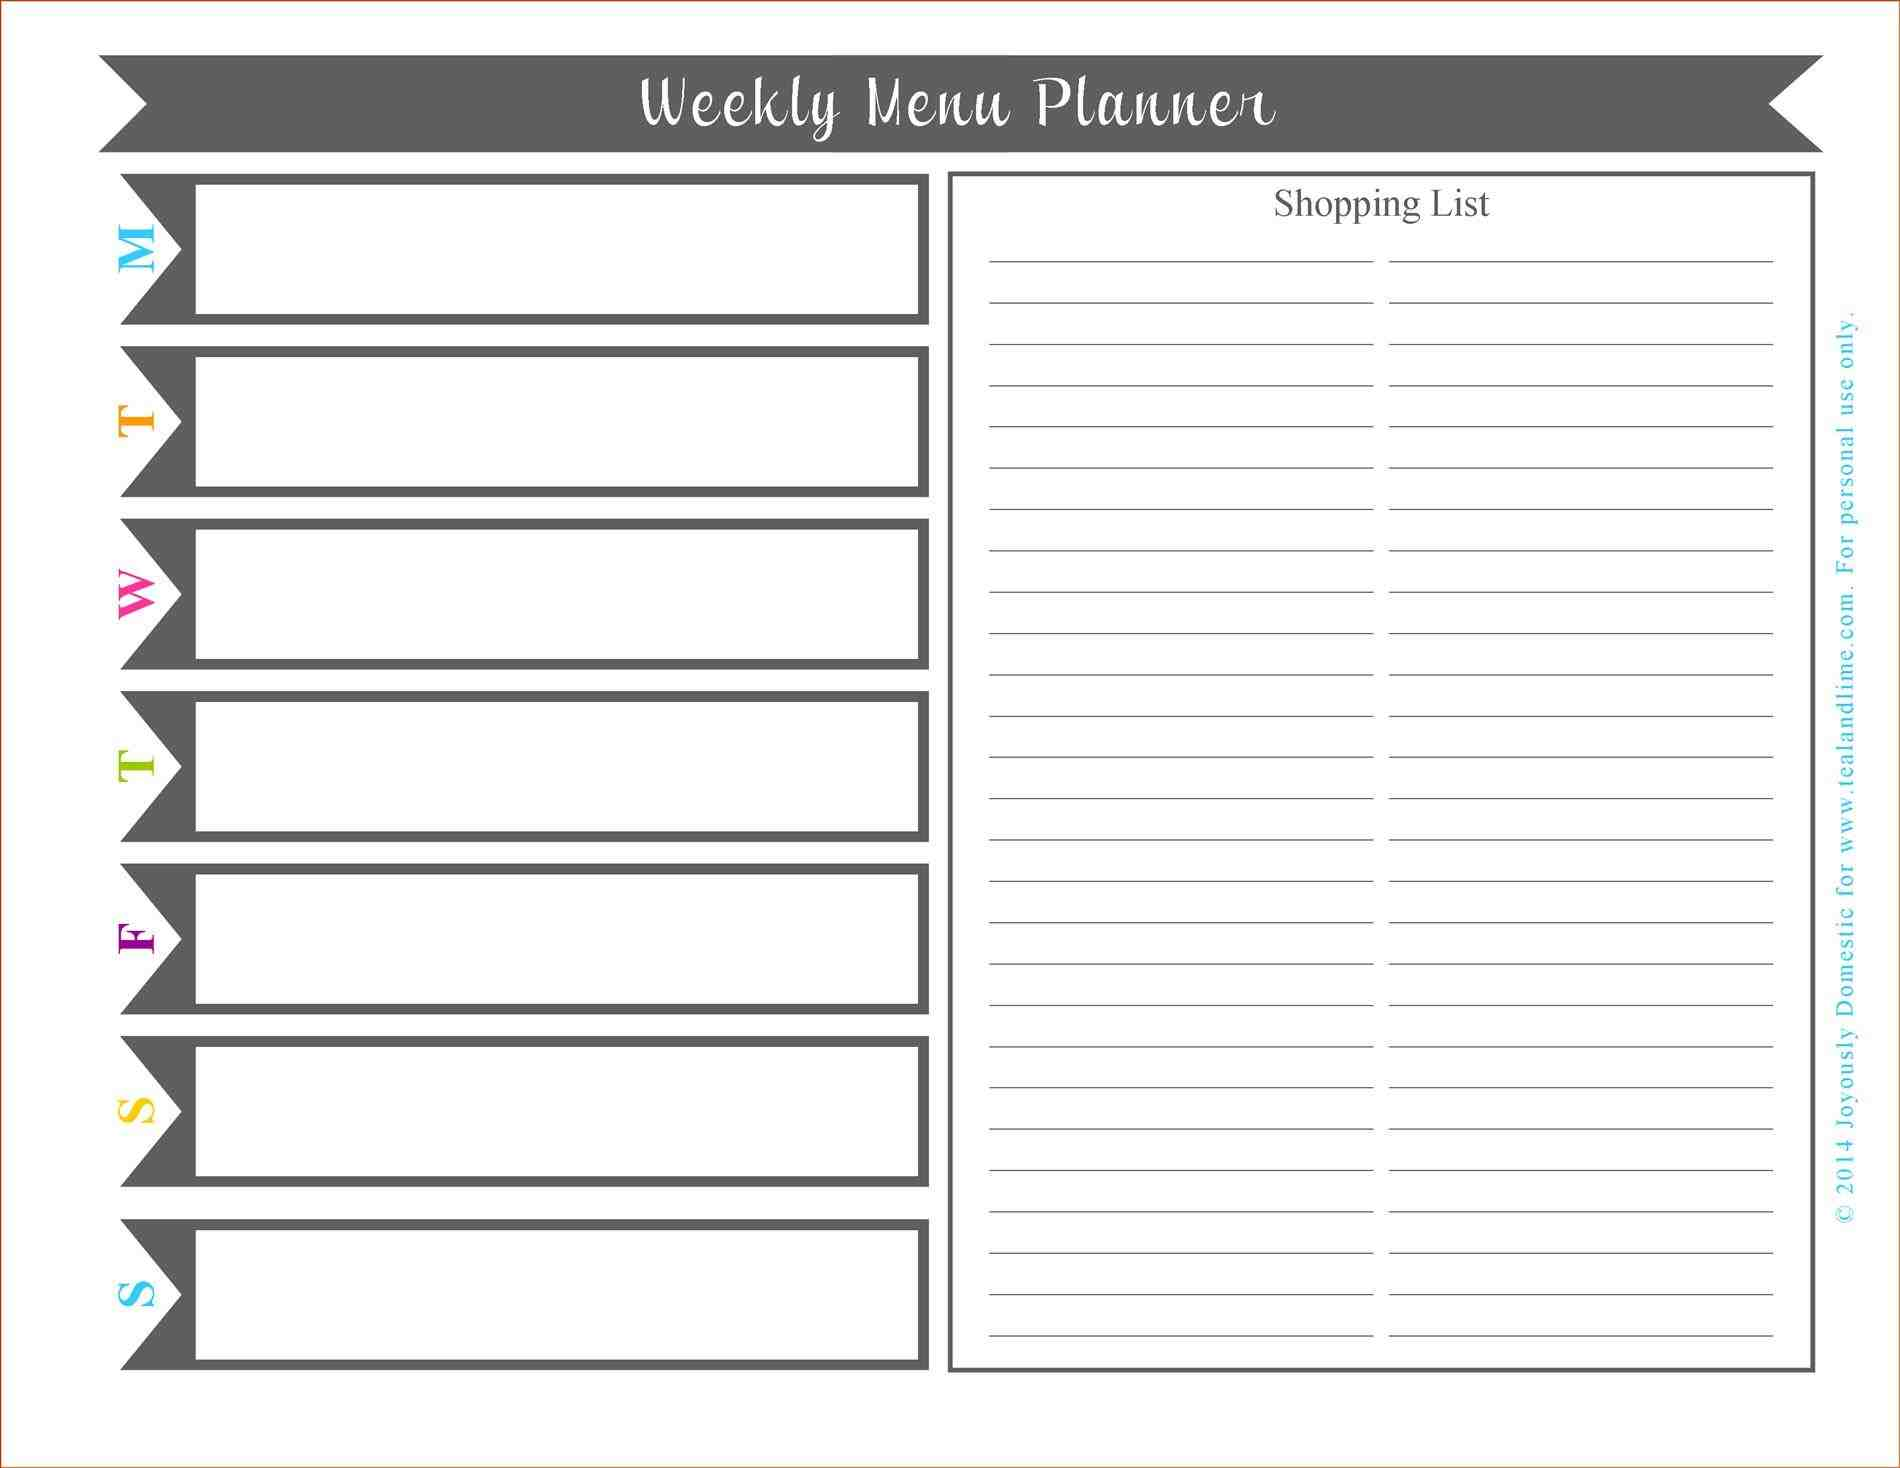 rhkaparime excel Top 5 Resources To Get Free Weekly Calendar Templates blank weekly calendar calendario pisrhcalendariopiscom weekly Top 5 Resources